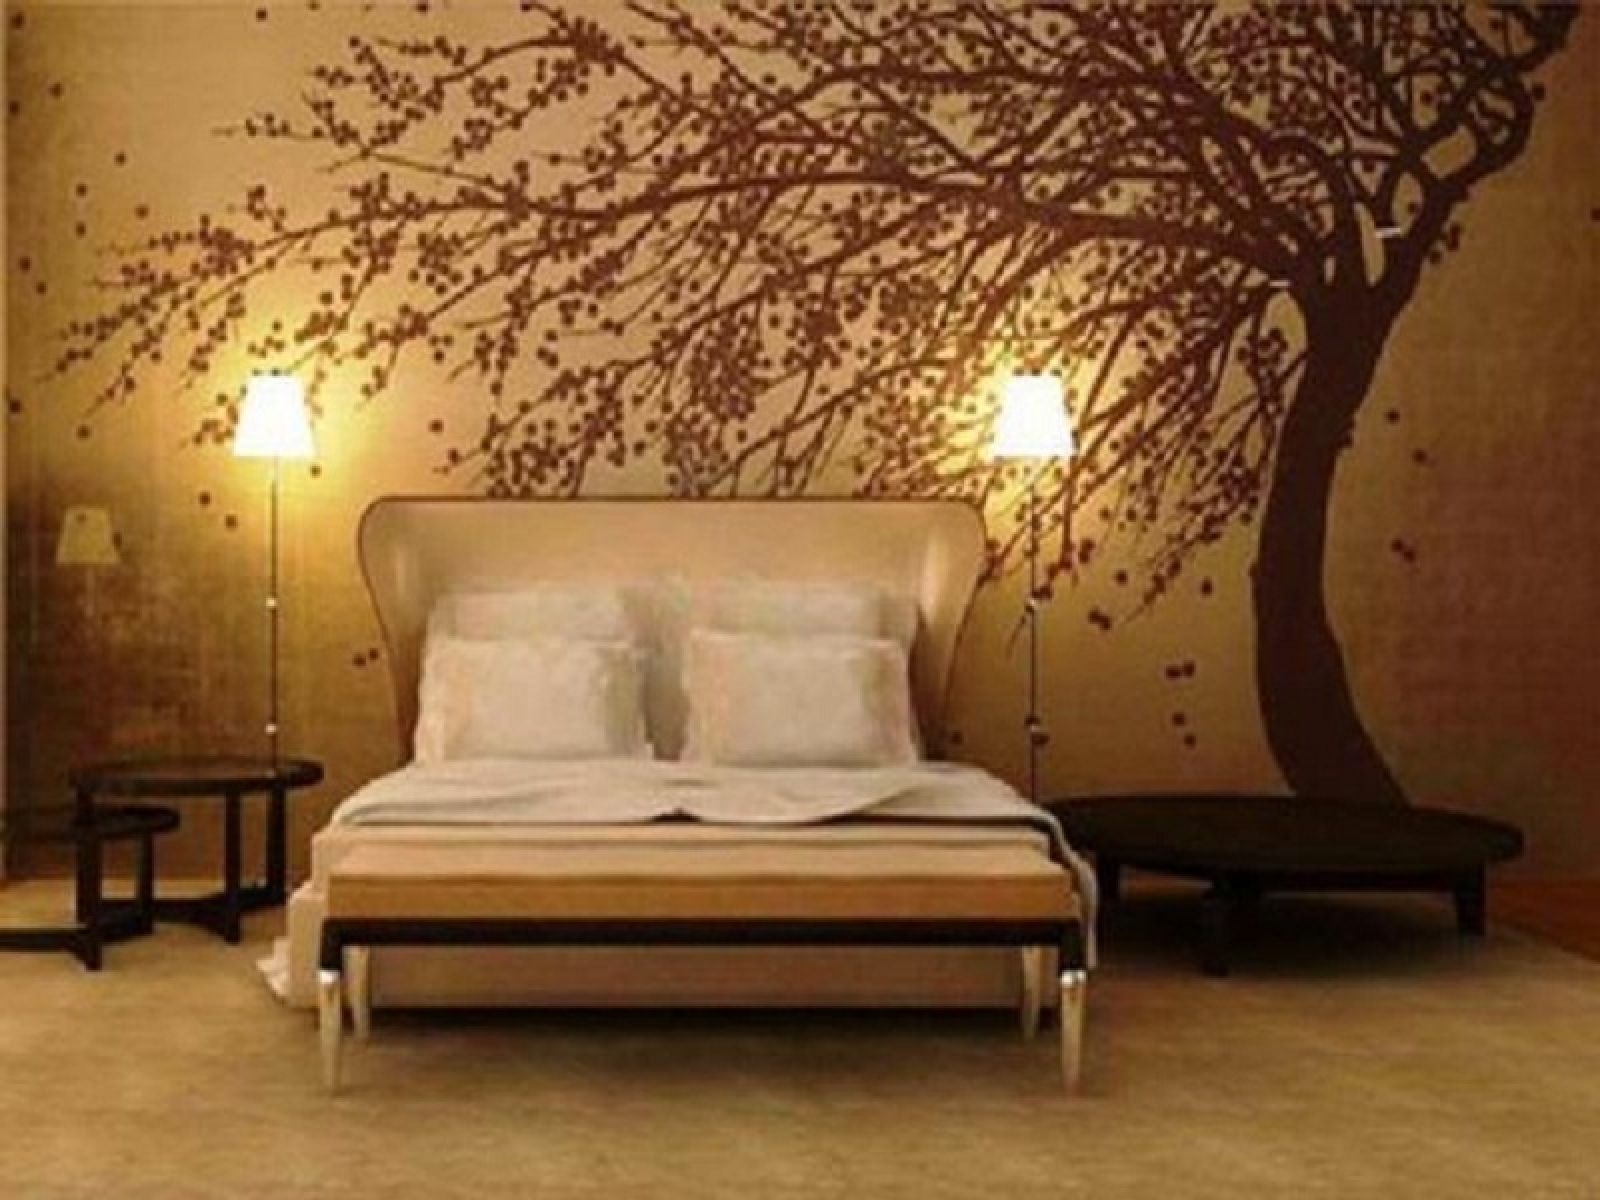 30 Best Wallpaper Designs for Bedrooms UK 2015 #bedroomwallapers #wallpaperdesigns # ...